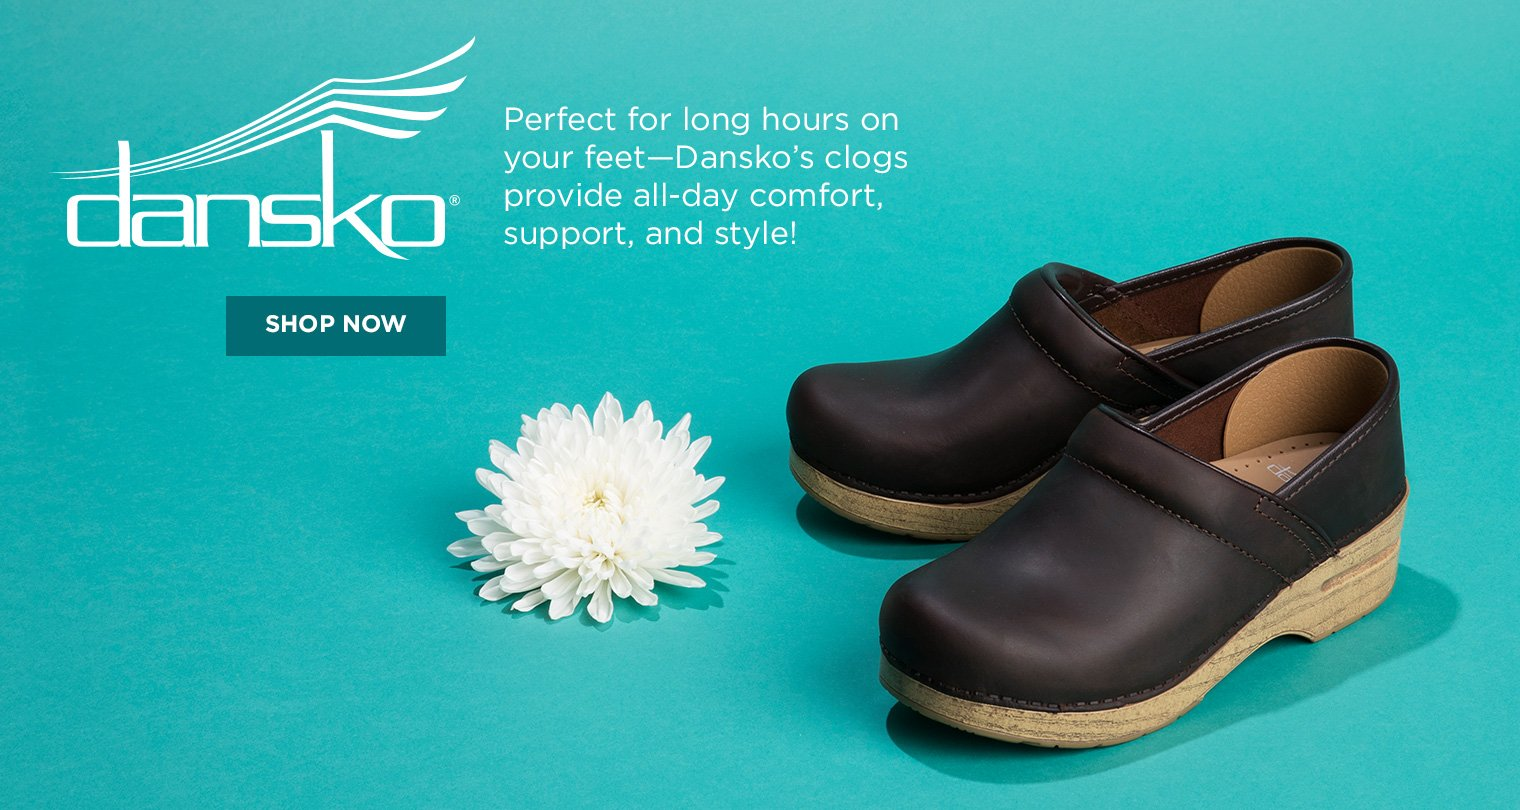 c8297735c2ed Dansko. Perfect for long hours on your feet